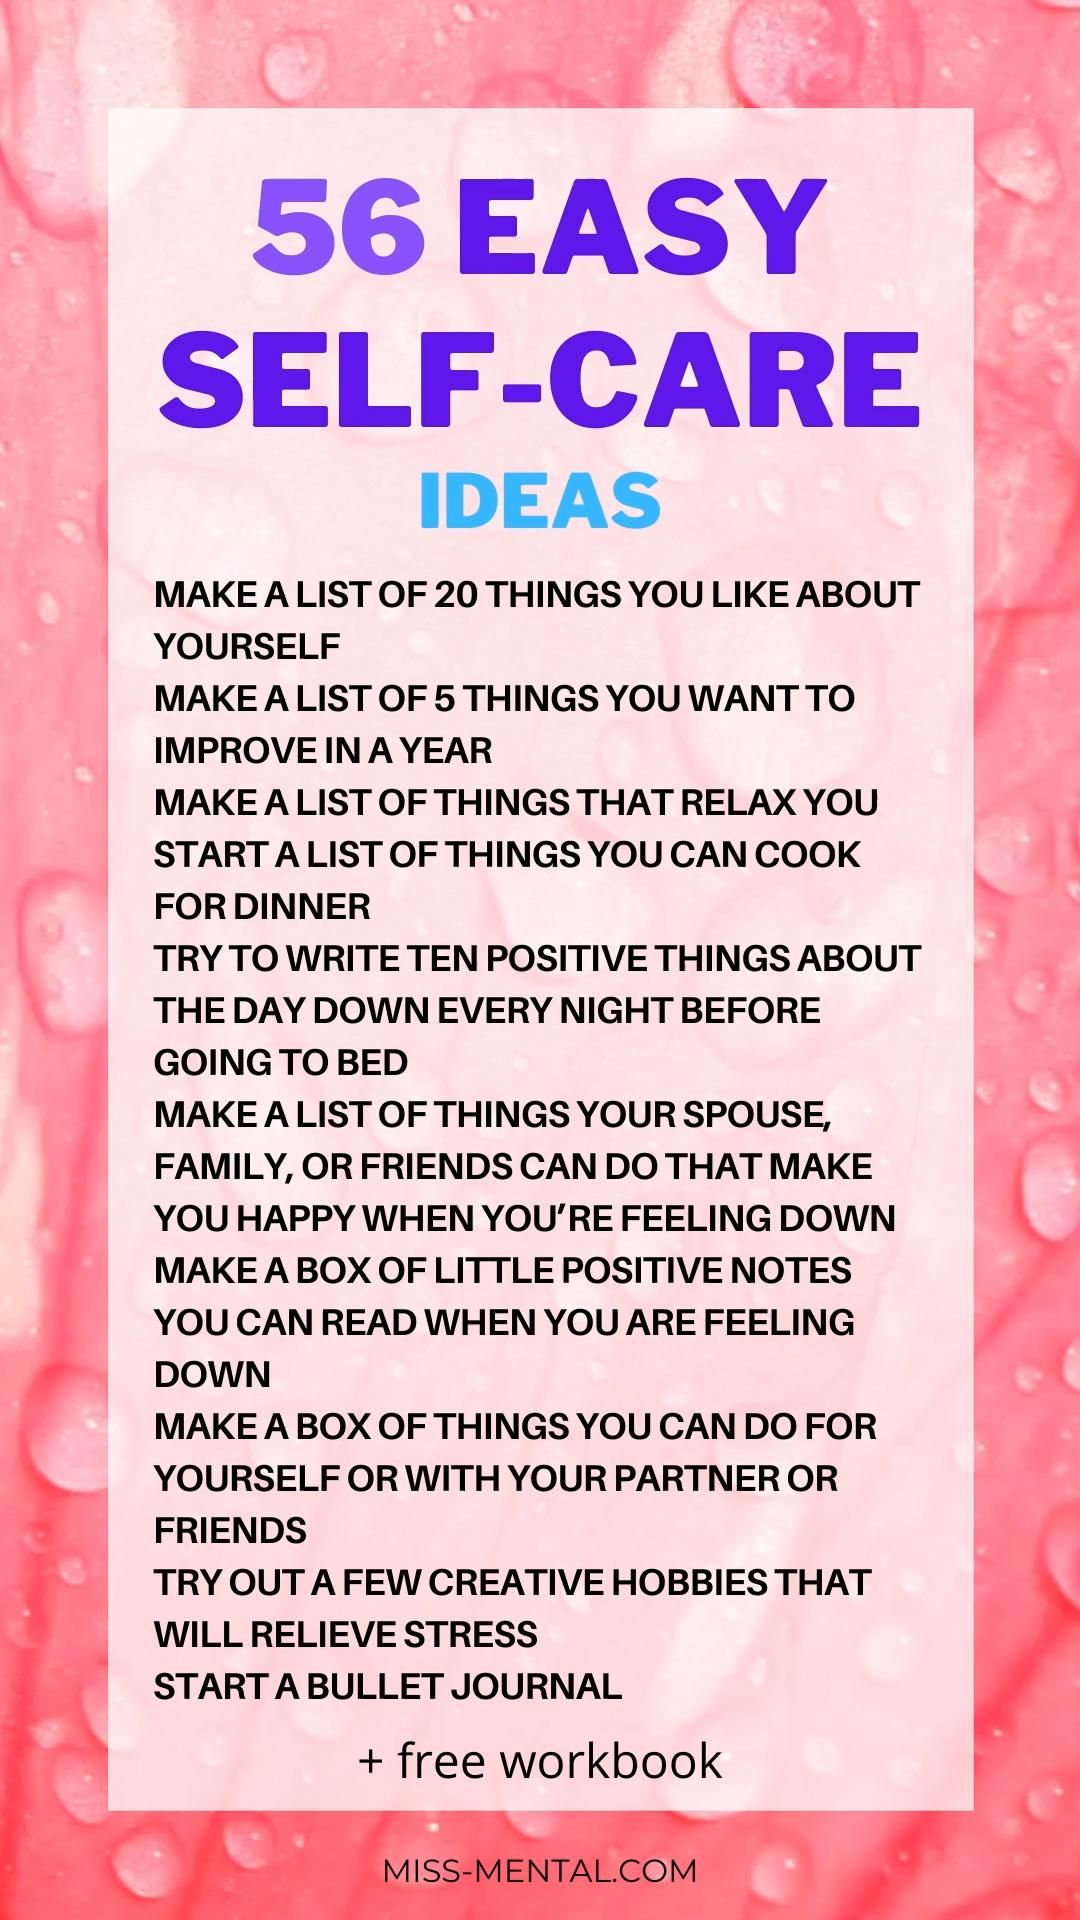 56 easy self-care ideas that will improve your life